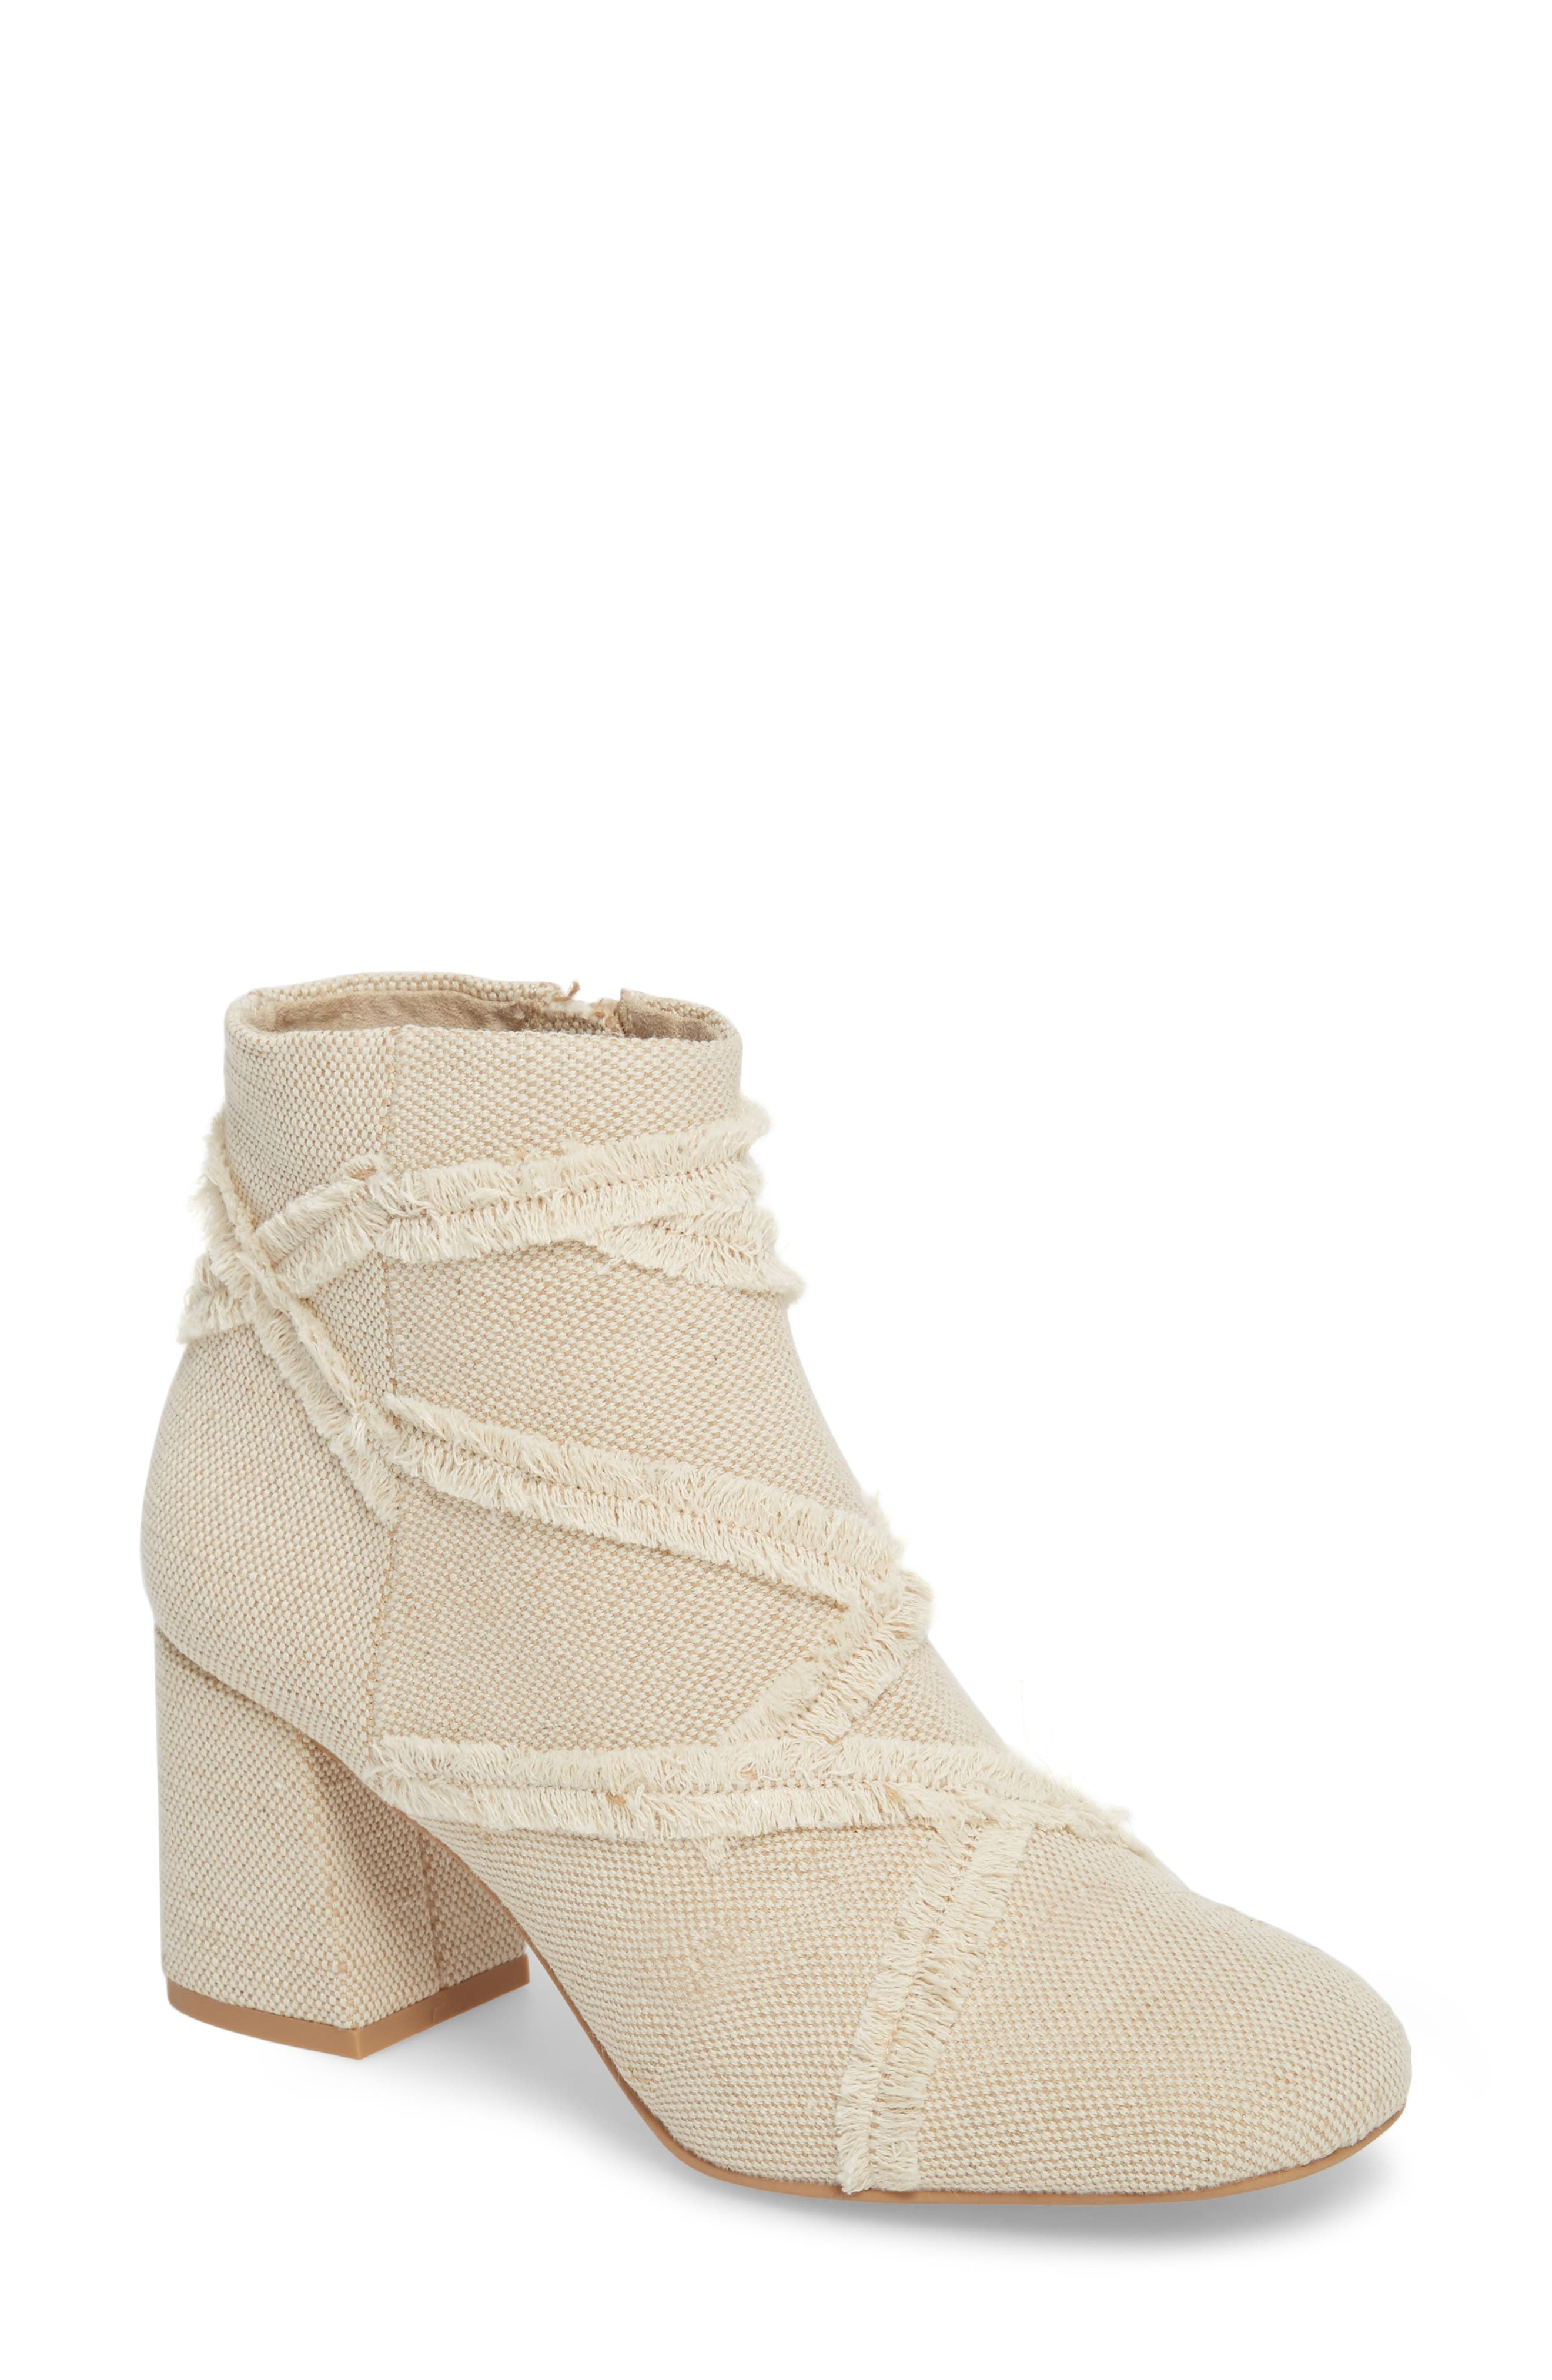 Audition II Bootie,                         Main,                         color, Frayed Natural Fabric